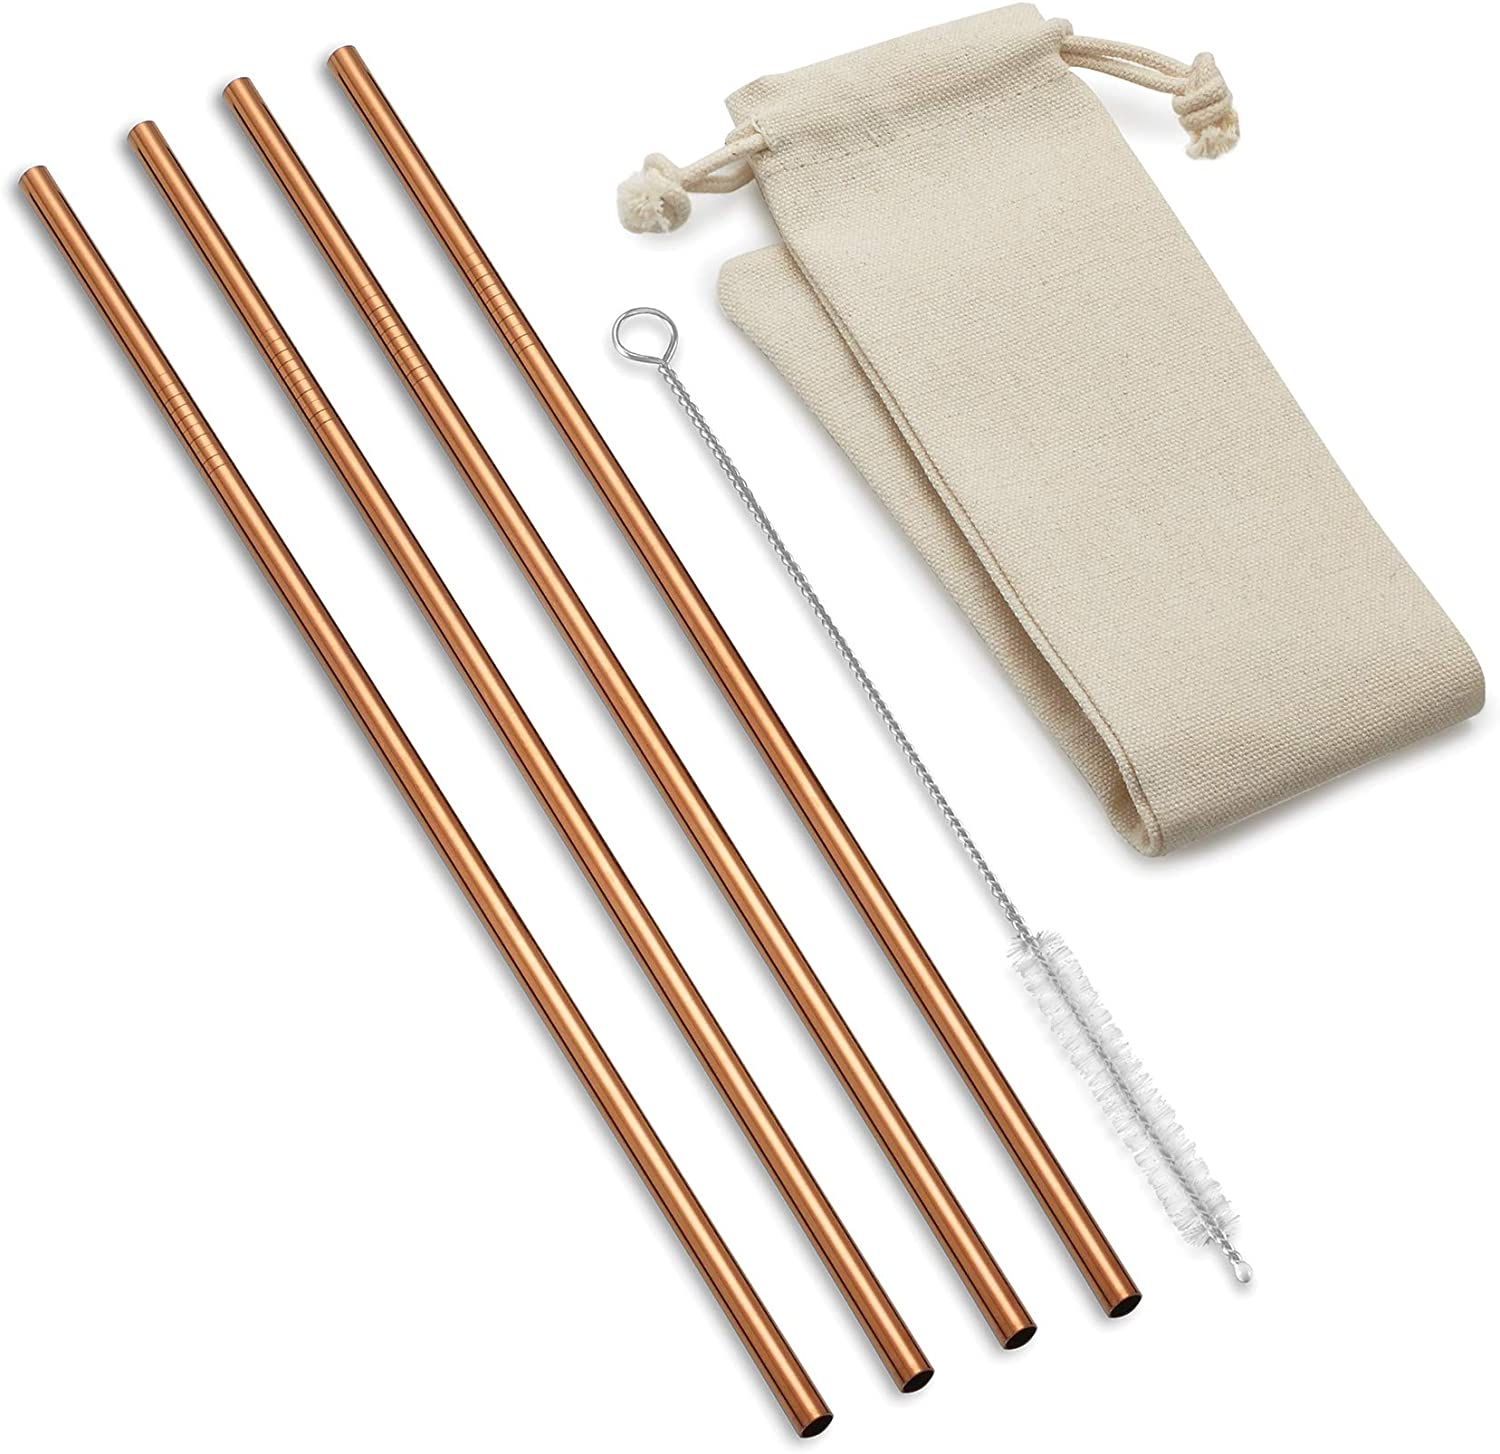 Ranking TOP6 Outset Copper Straight Long Reusable Straws Special price for a limited time 11.75 inc x 3.5 1